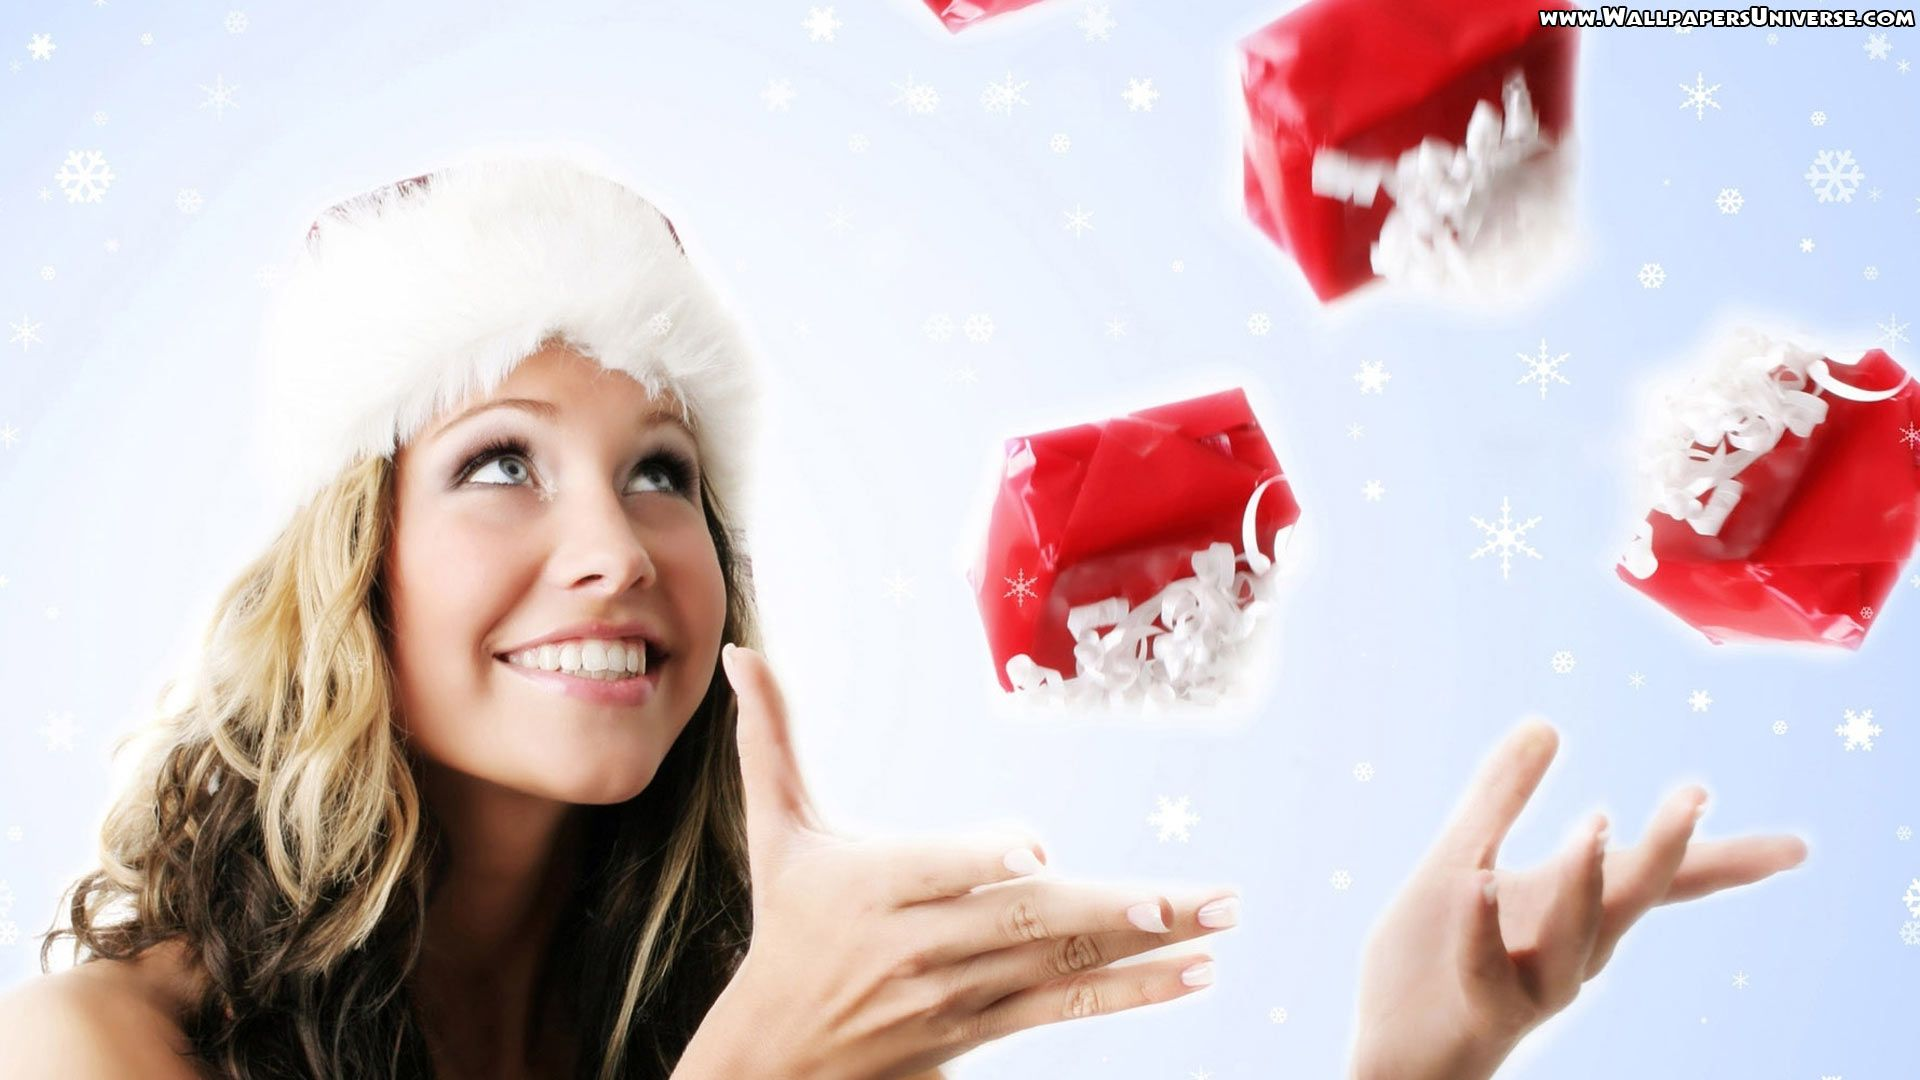 Christmas Girl Gifts   High Definition Wallpapers (HD Wallpapers ...